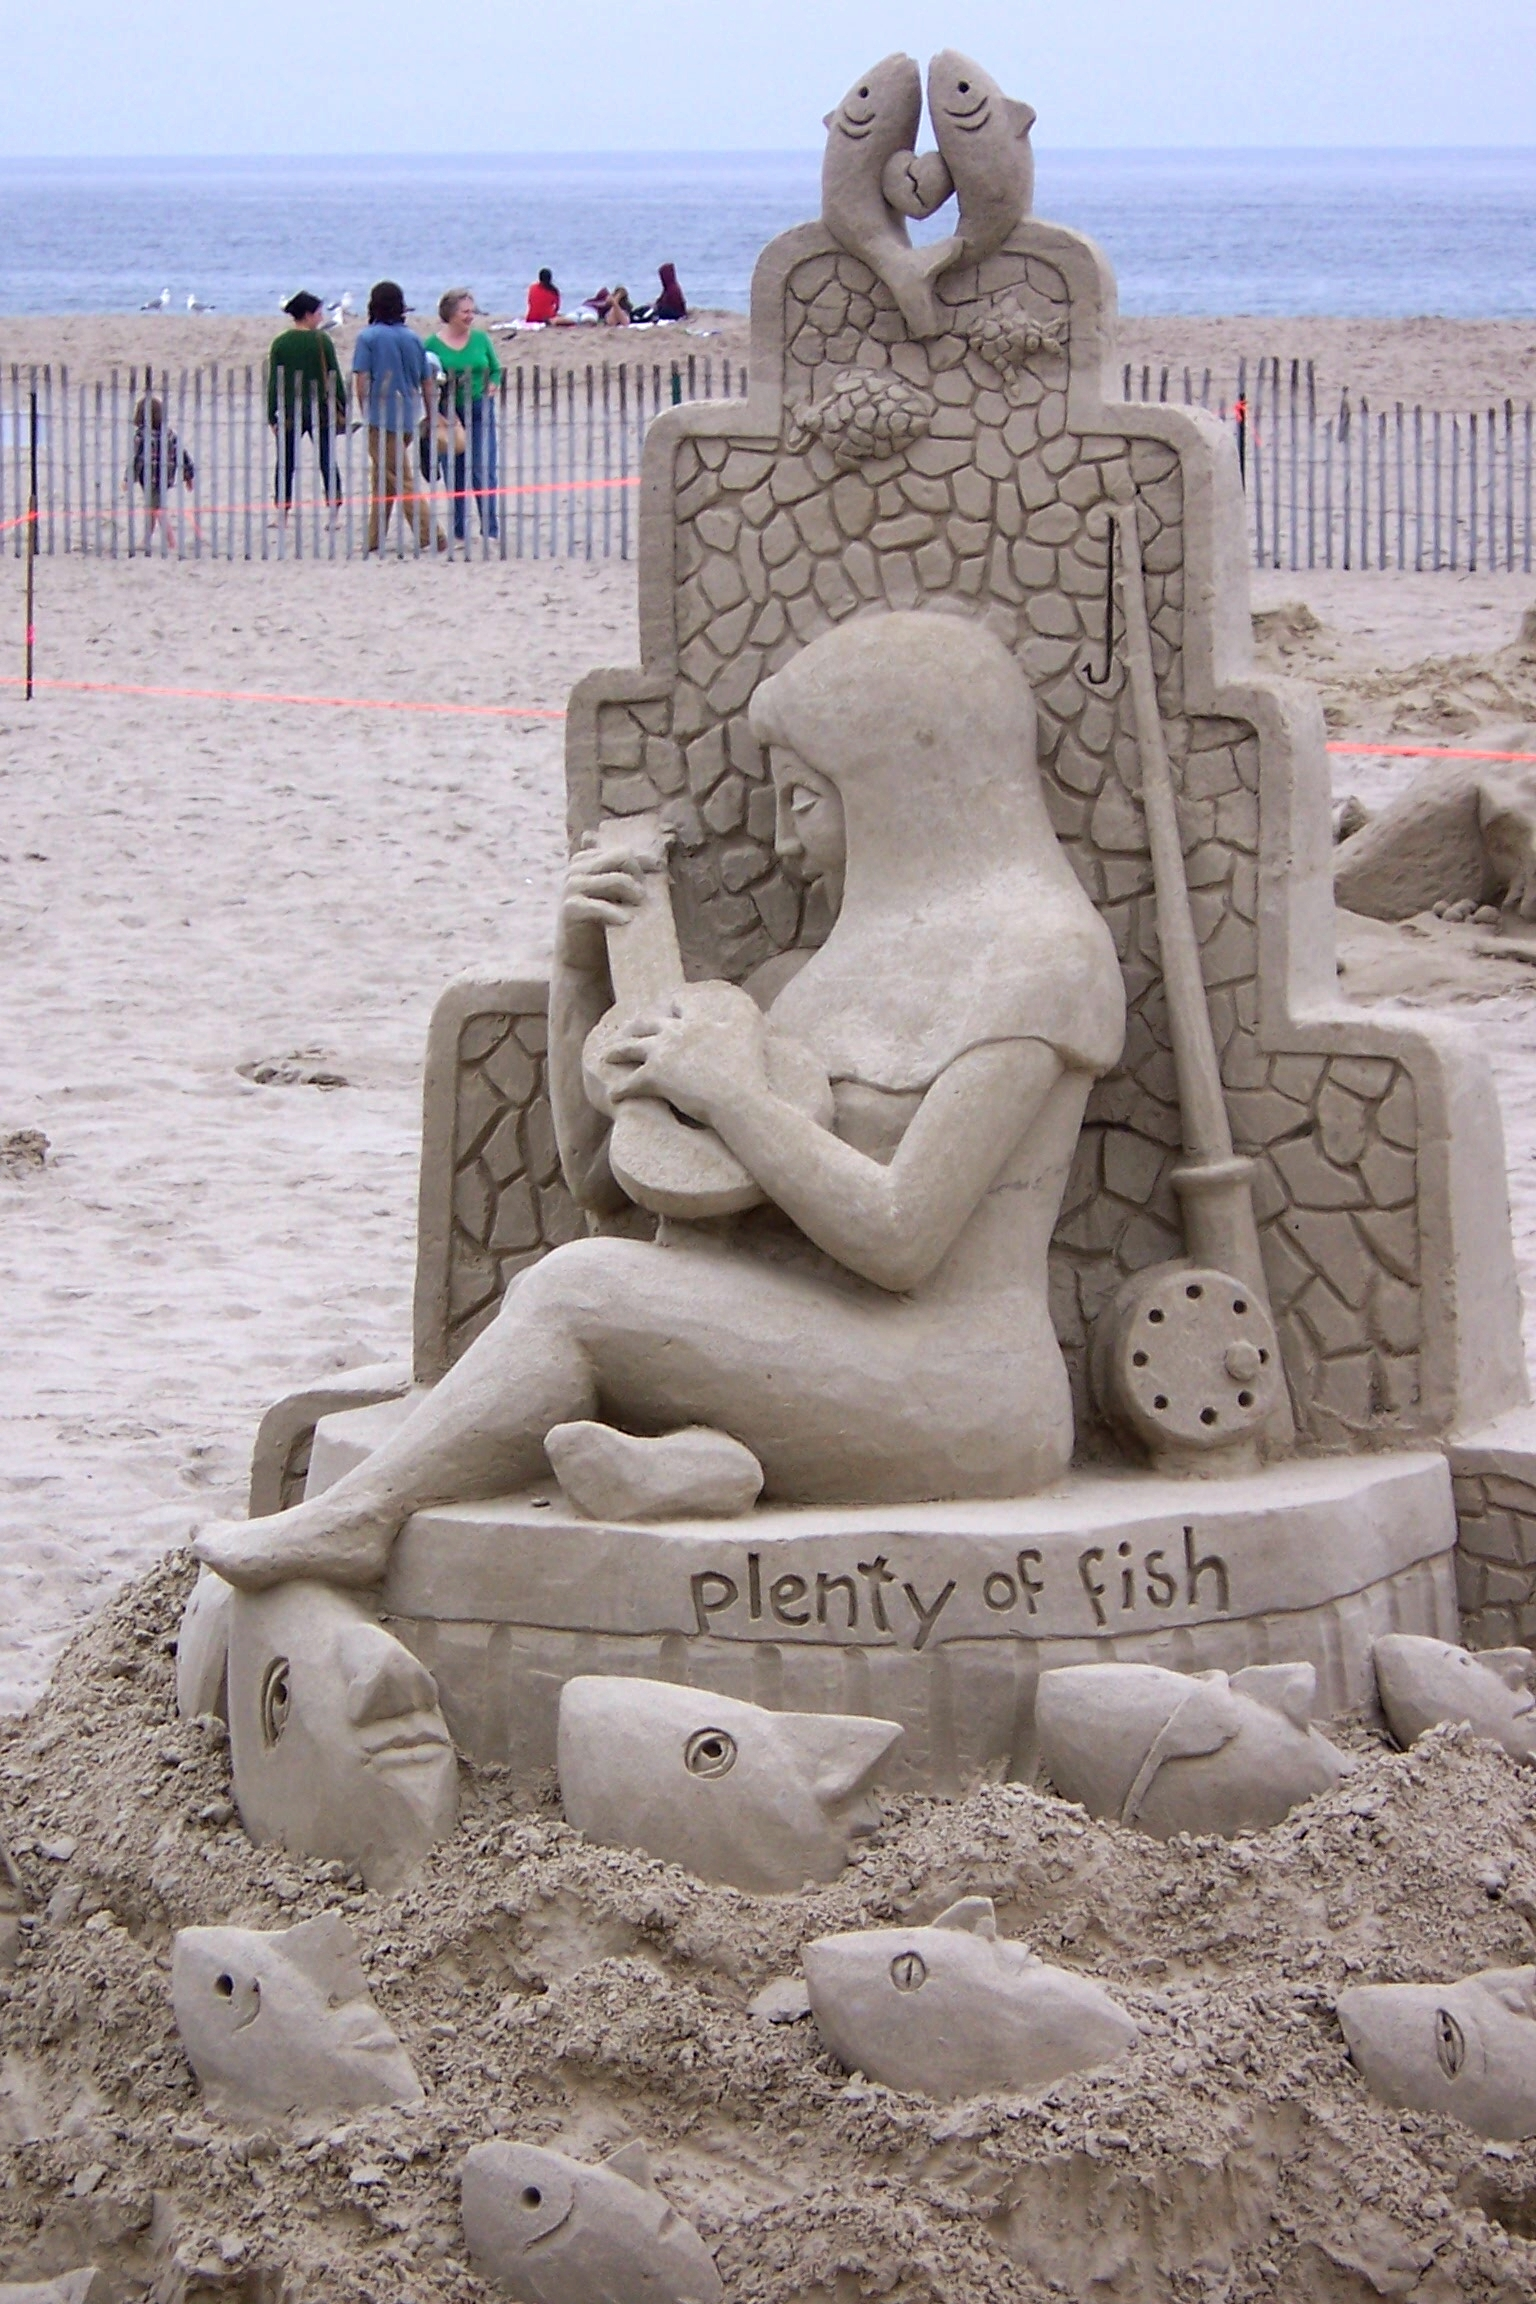 Sand creations plenty of fish flickr photo sharing for Plenty of fish nh